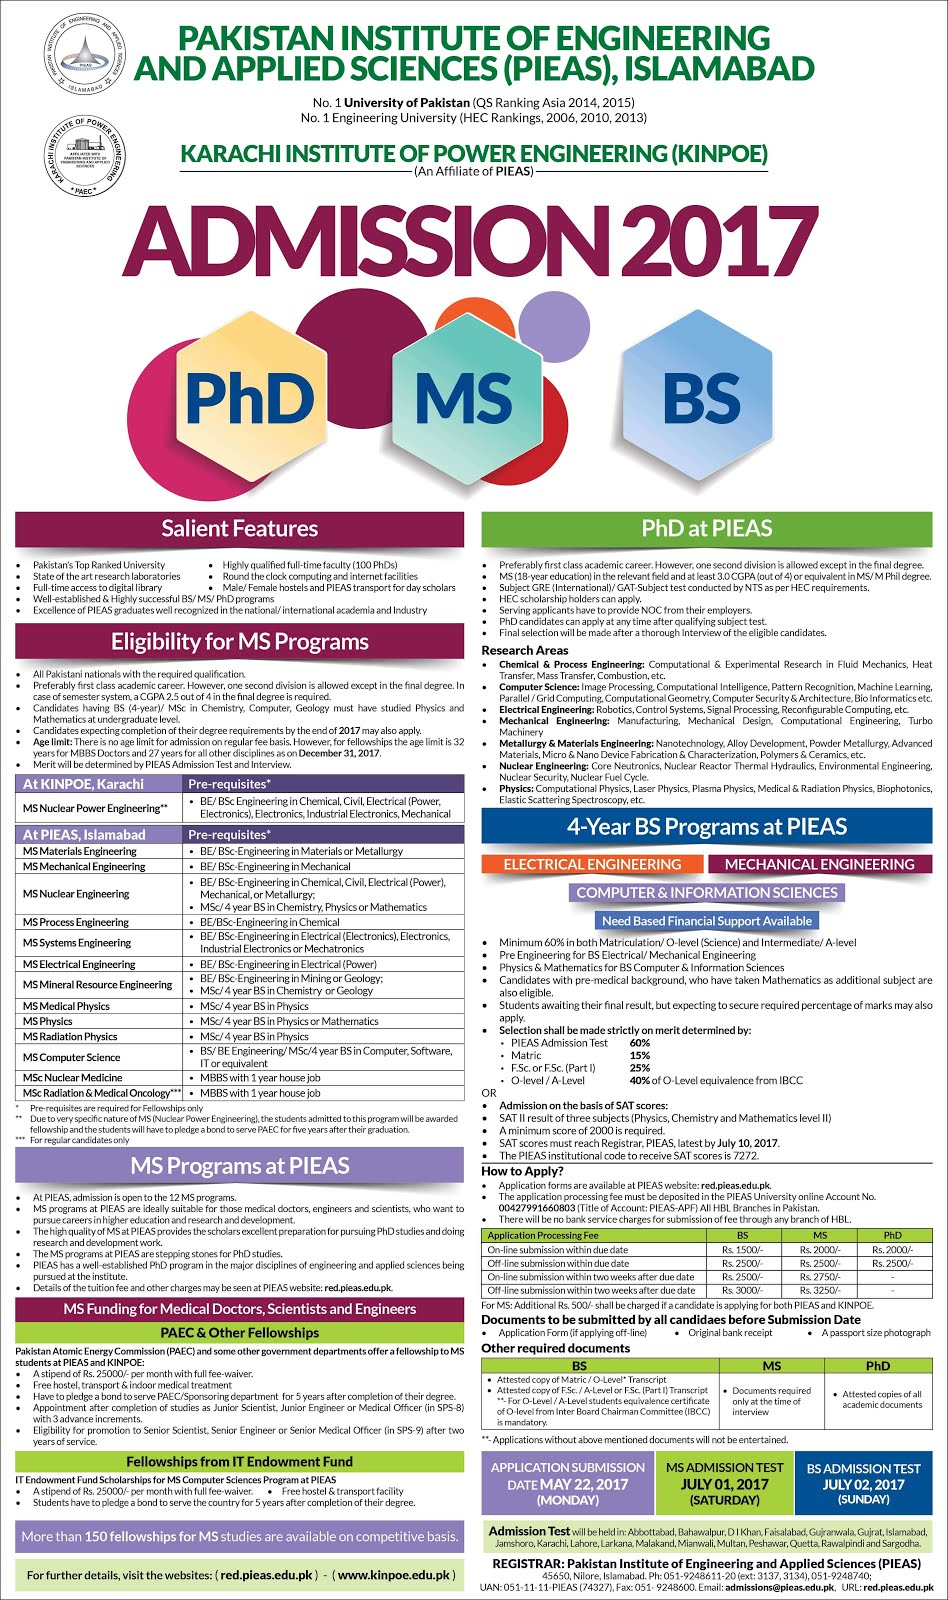 Advertisment of PIEAS ADMISSION for BS, MS and Ph.D May 22, 2017